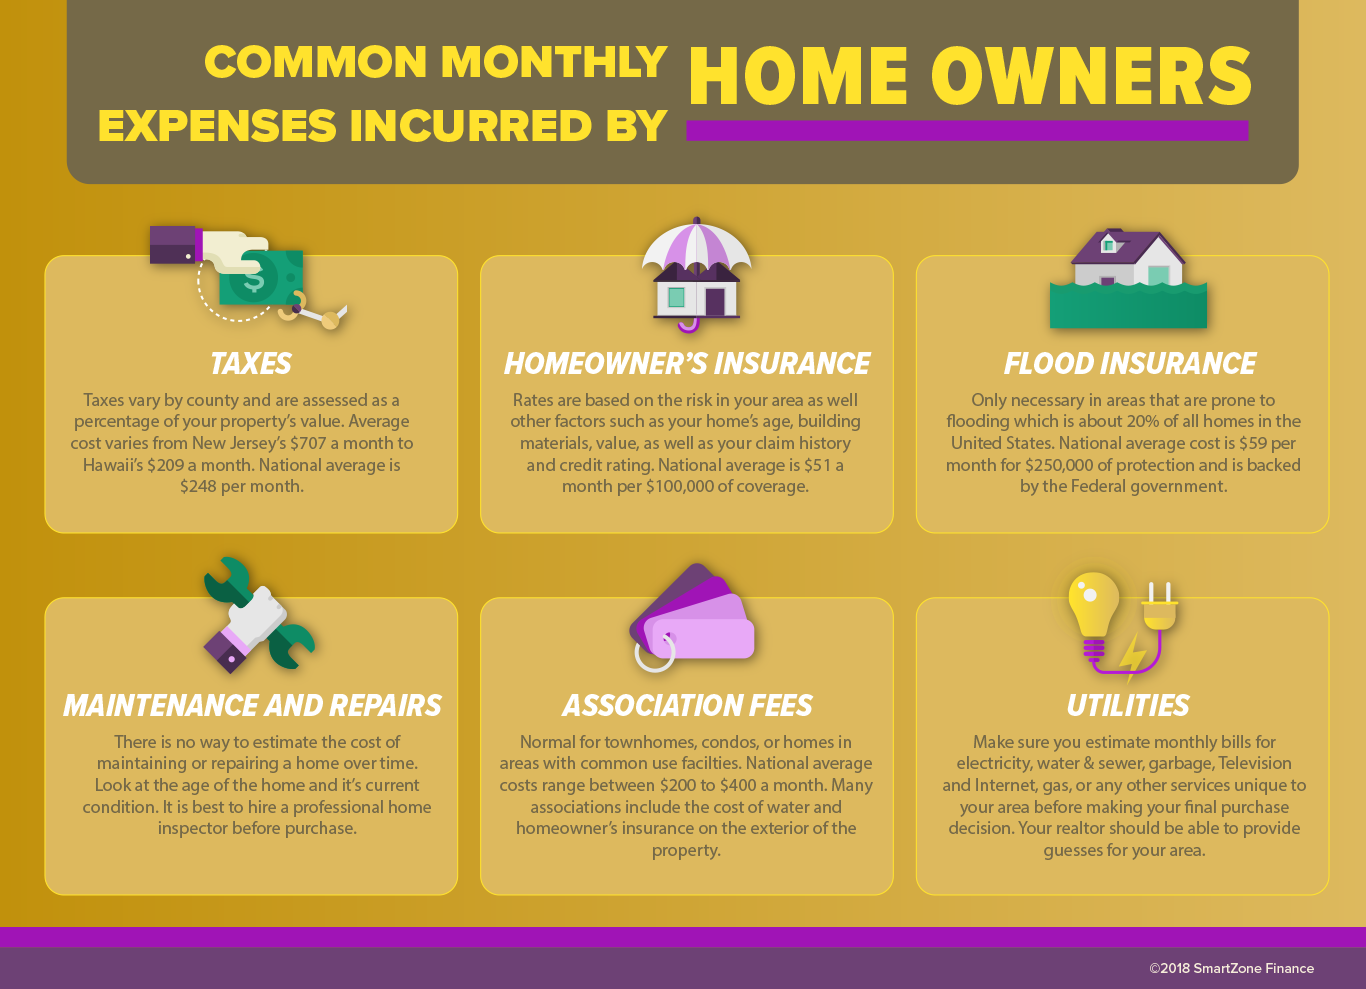 Common monthly expenses incurred by home owners.